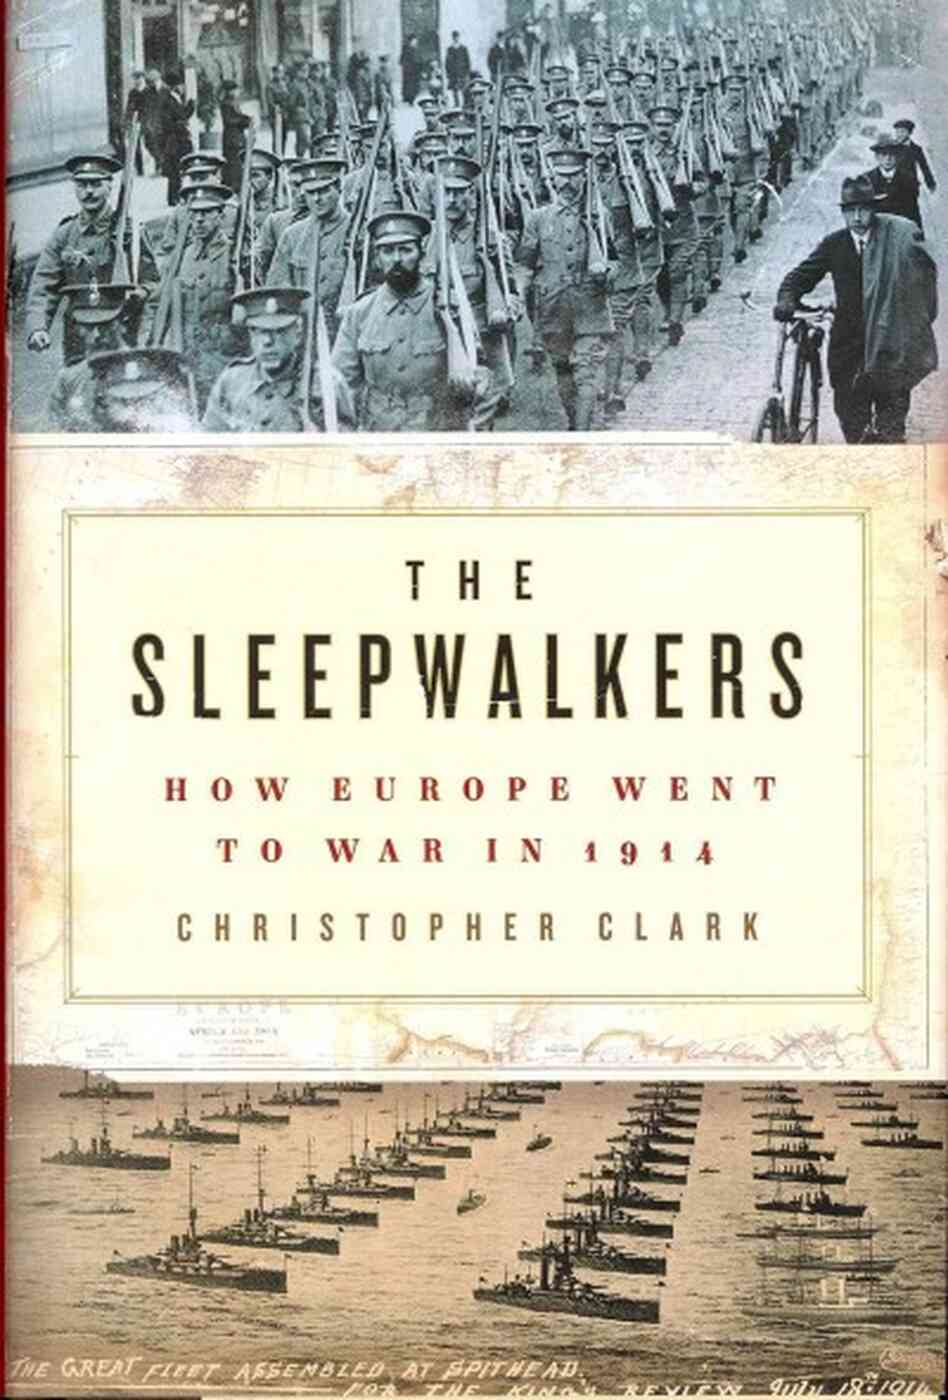 http://www.npr.org/2013/04/23/178616215/stumbling-into-world-war-i-like-sleepwalkers